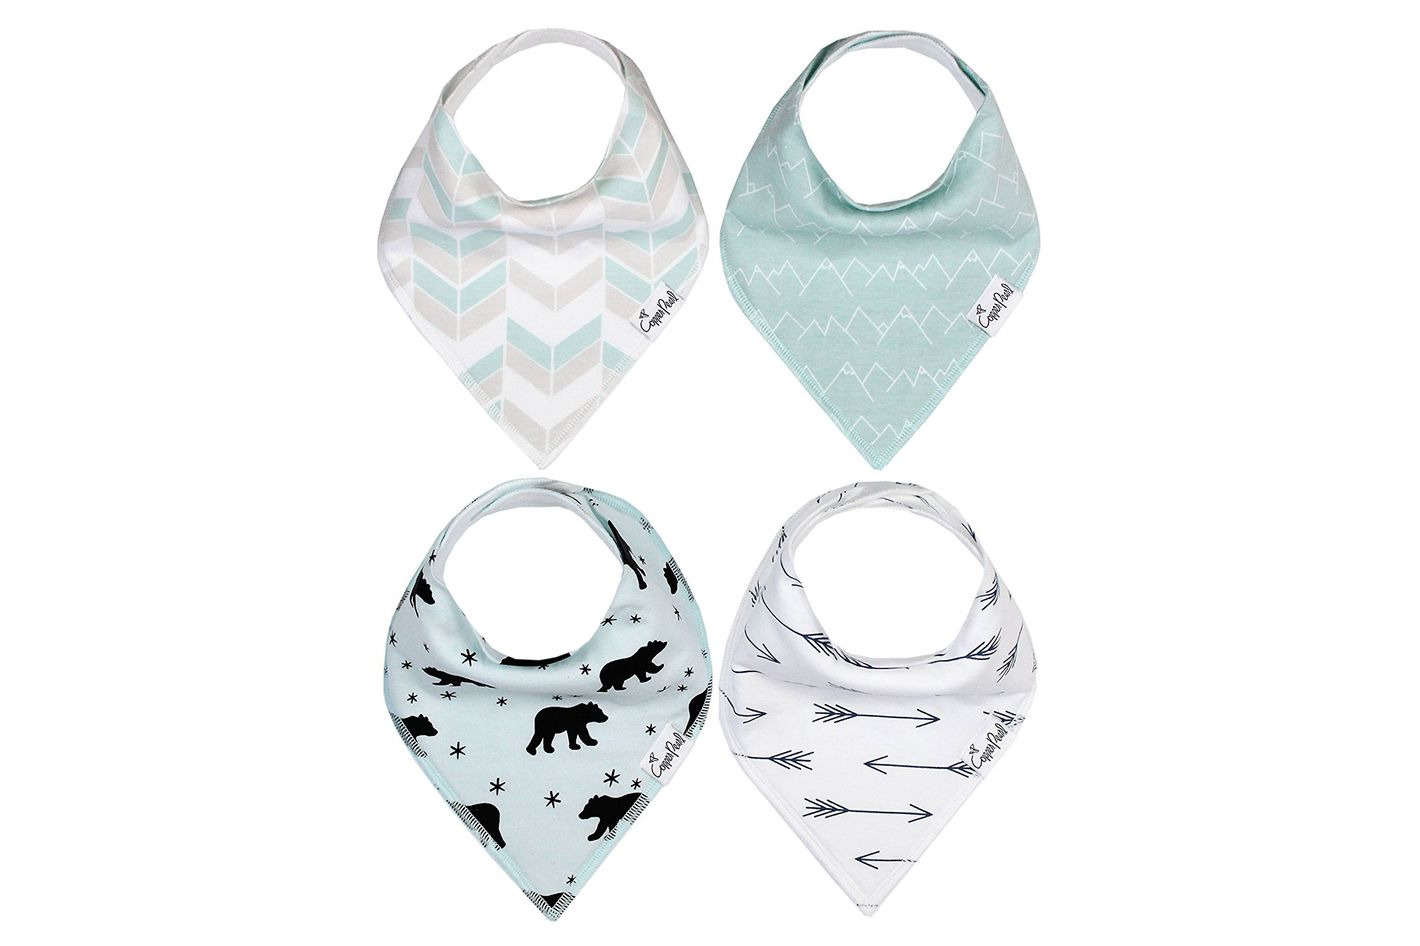 Copper Pearl Baby Bandana Drool Bibs, Pack of 4